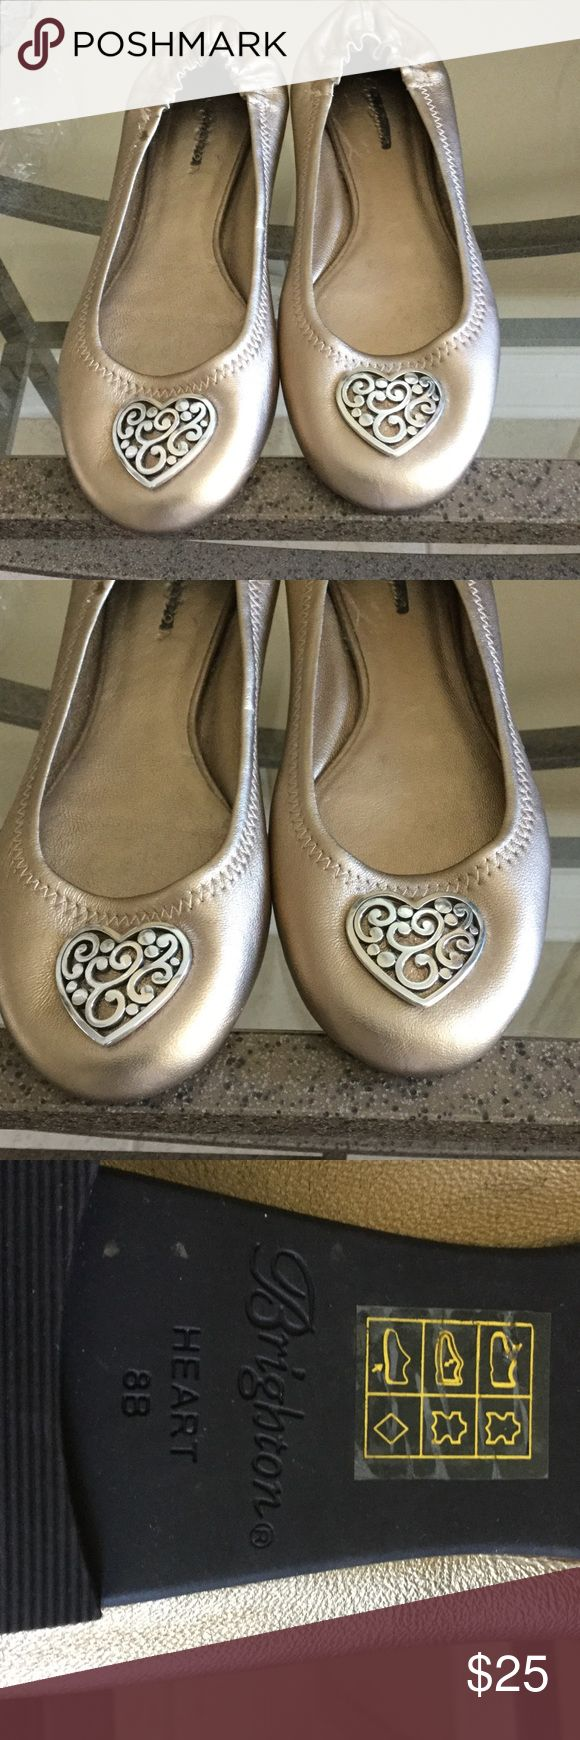 Brighton gold Ballet shoes, size 8B, barely worn Brighton size 8 shoes in nearly new condition. Never worn outside. Brighton Shoes Slippers